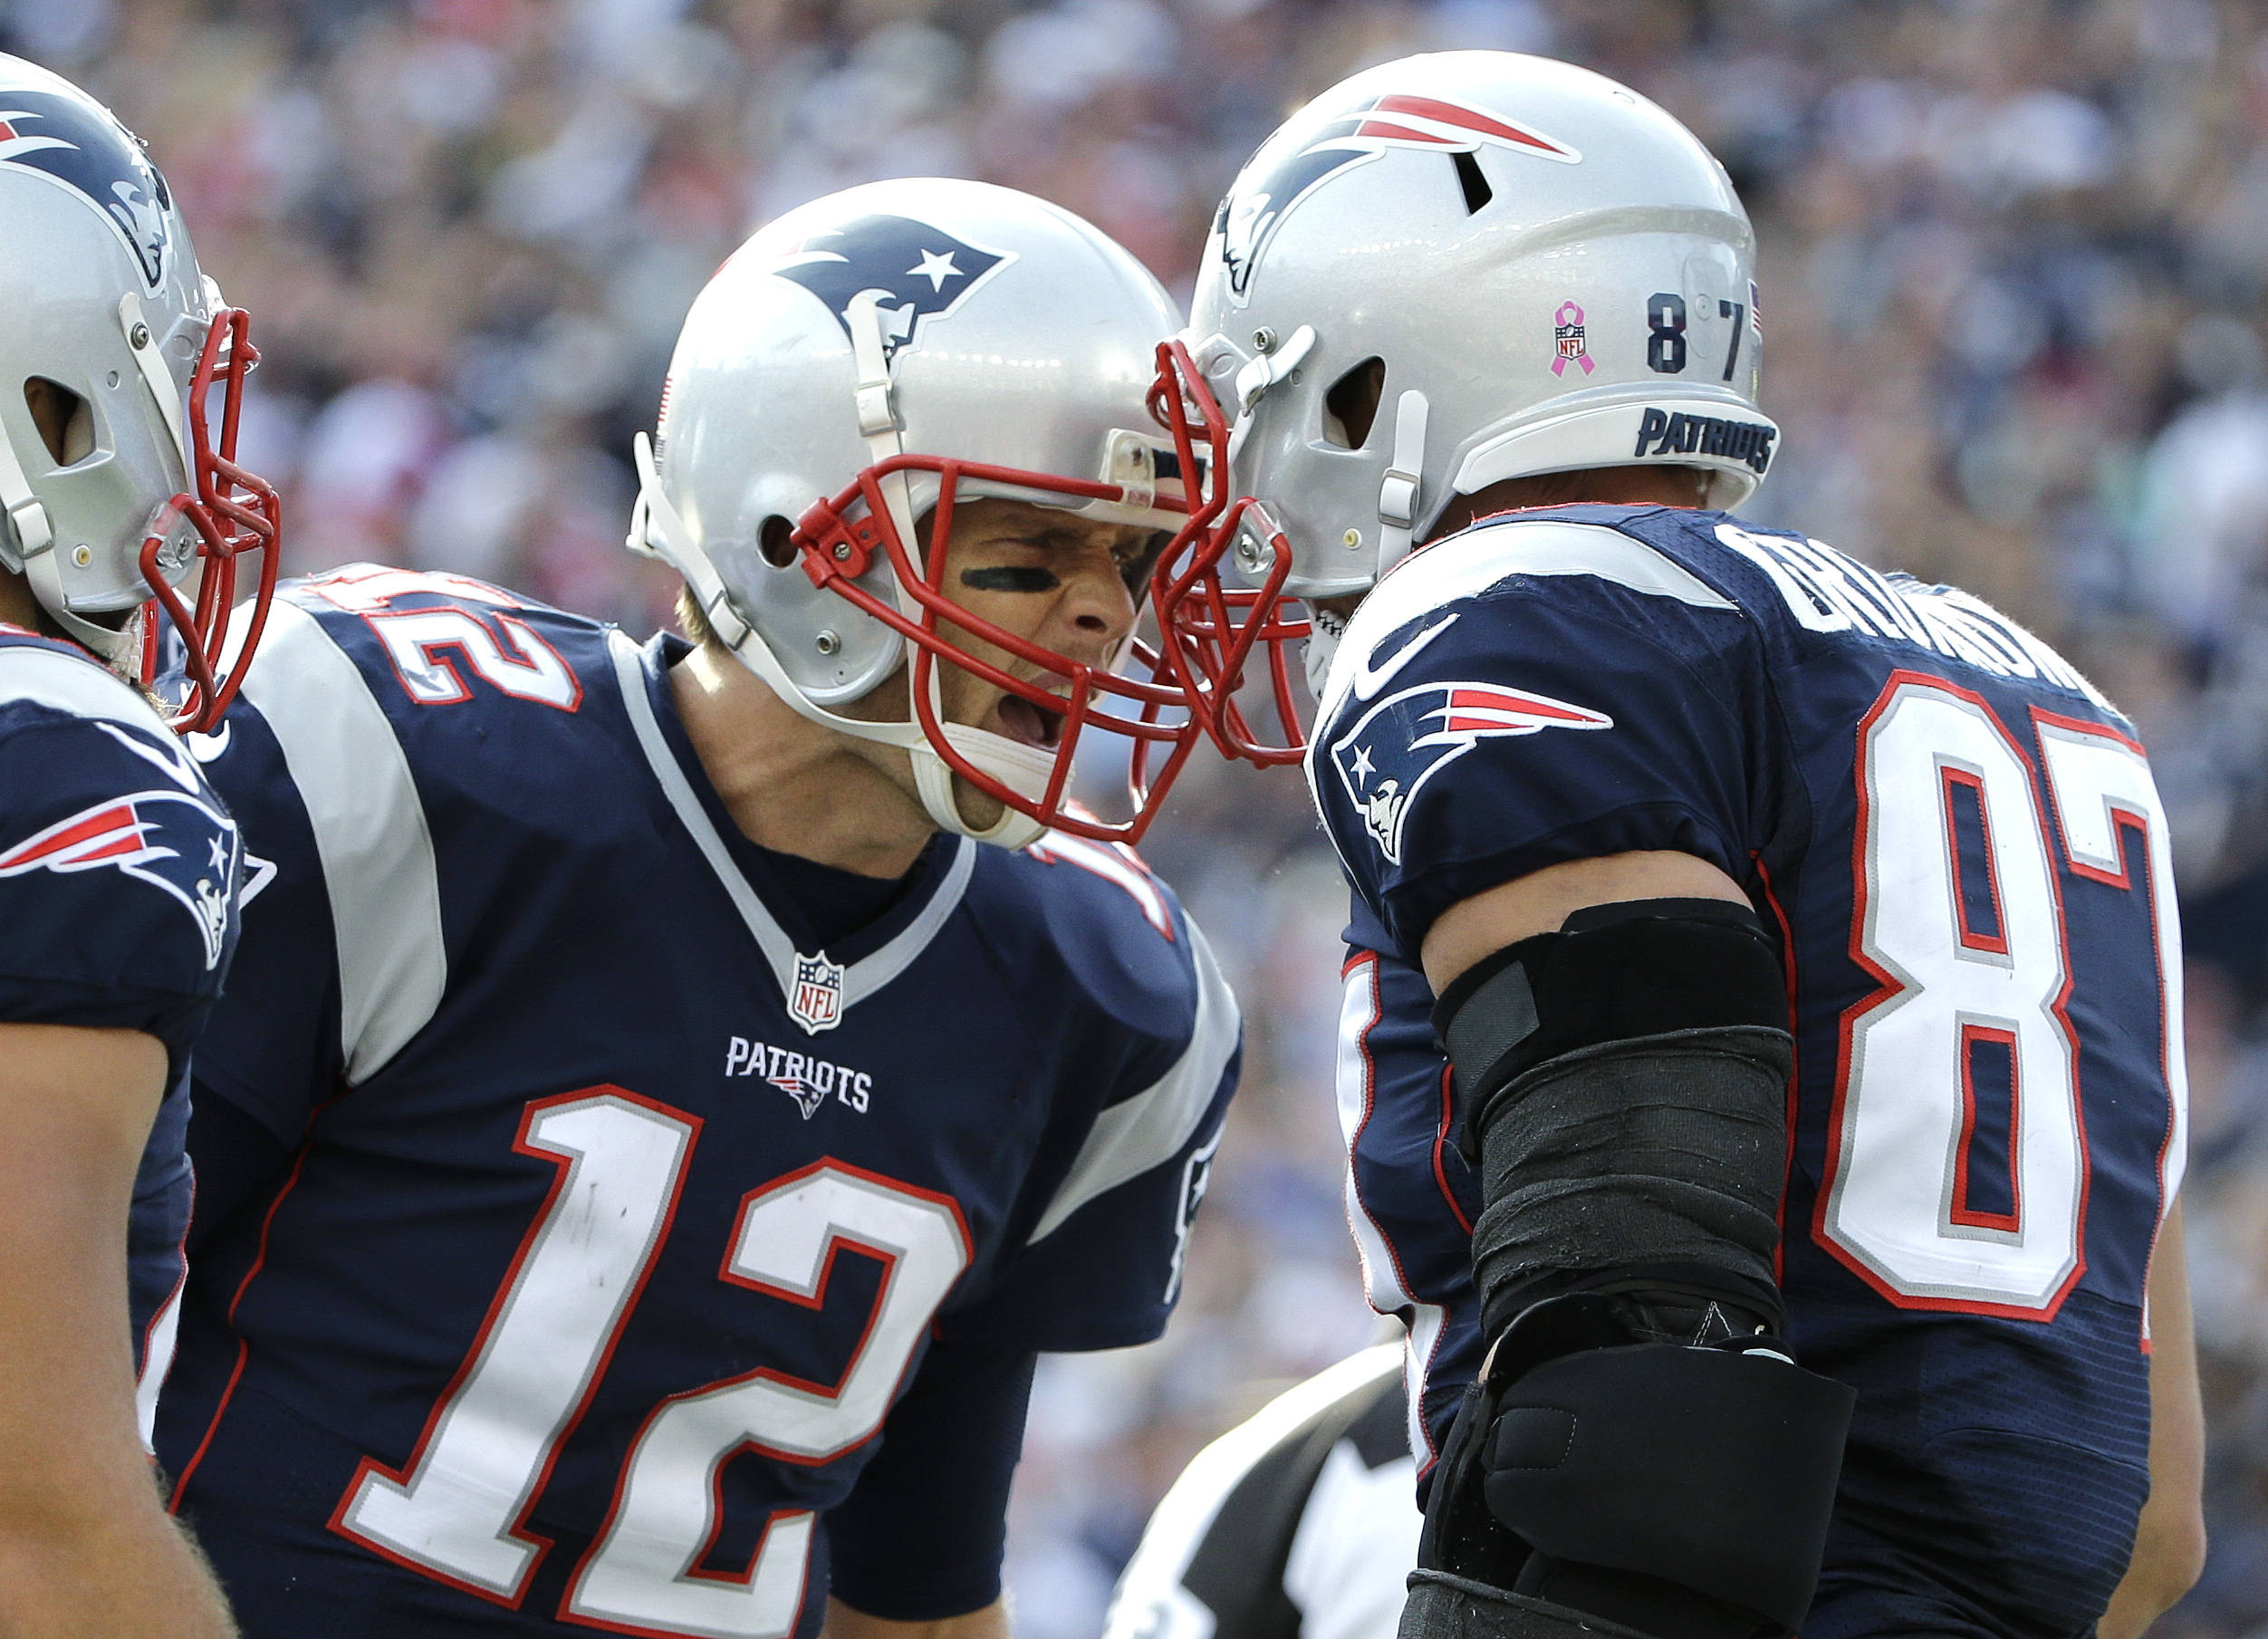 New England Patriots quarterback Tom Brady (12) celebrates his touchdown pass to tight end Rob Gronkowski (87) during the second half of an NFL football game against the Cincinnati Bengals, Sunday, Oct. 16, 2016, in Foxborough, Mass. (AP Photo/Elise Amend